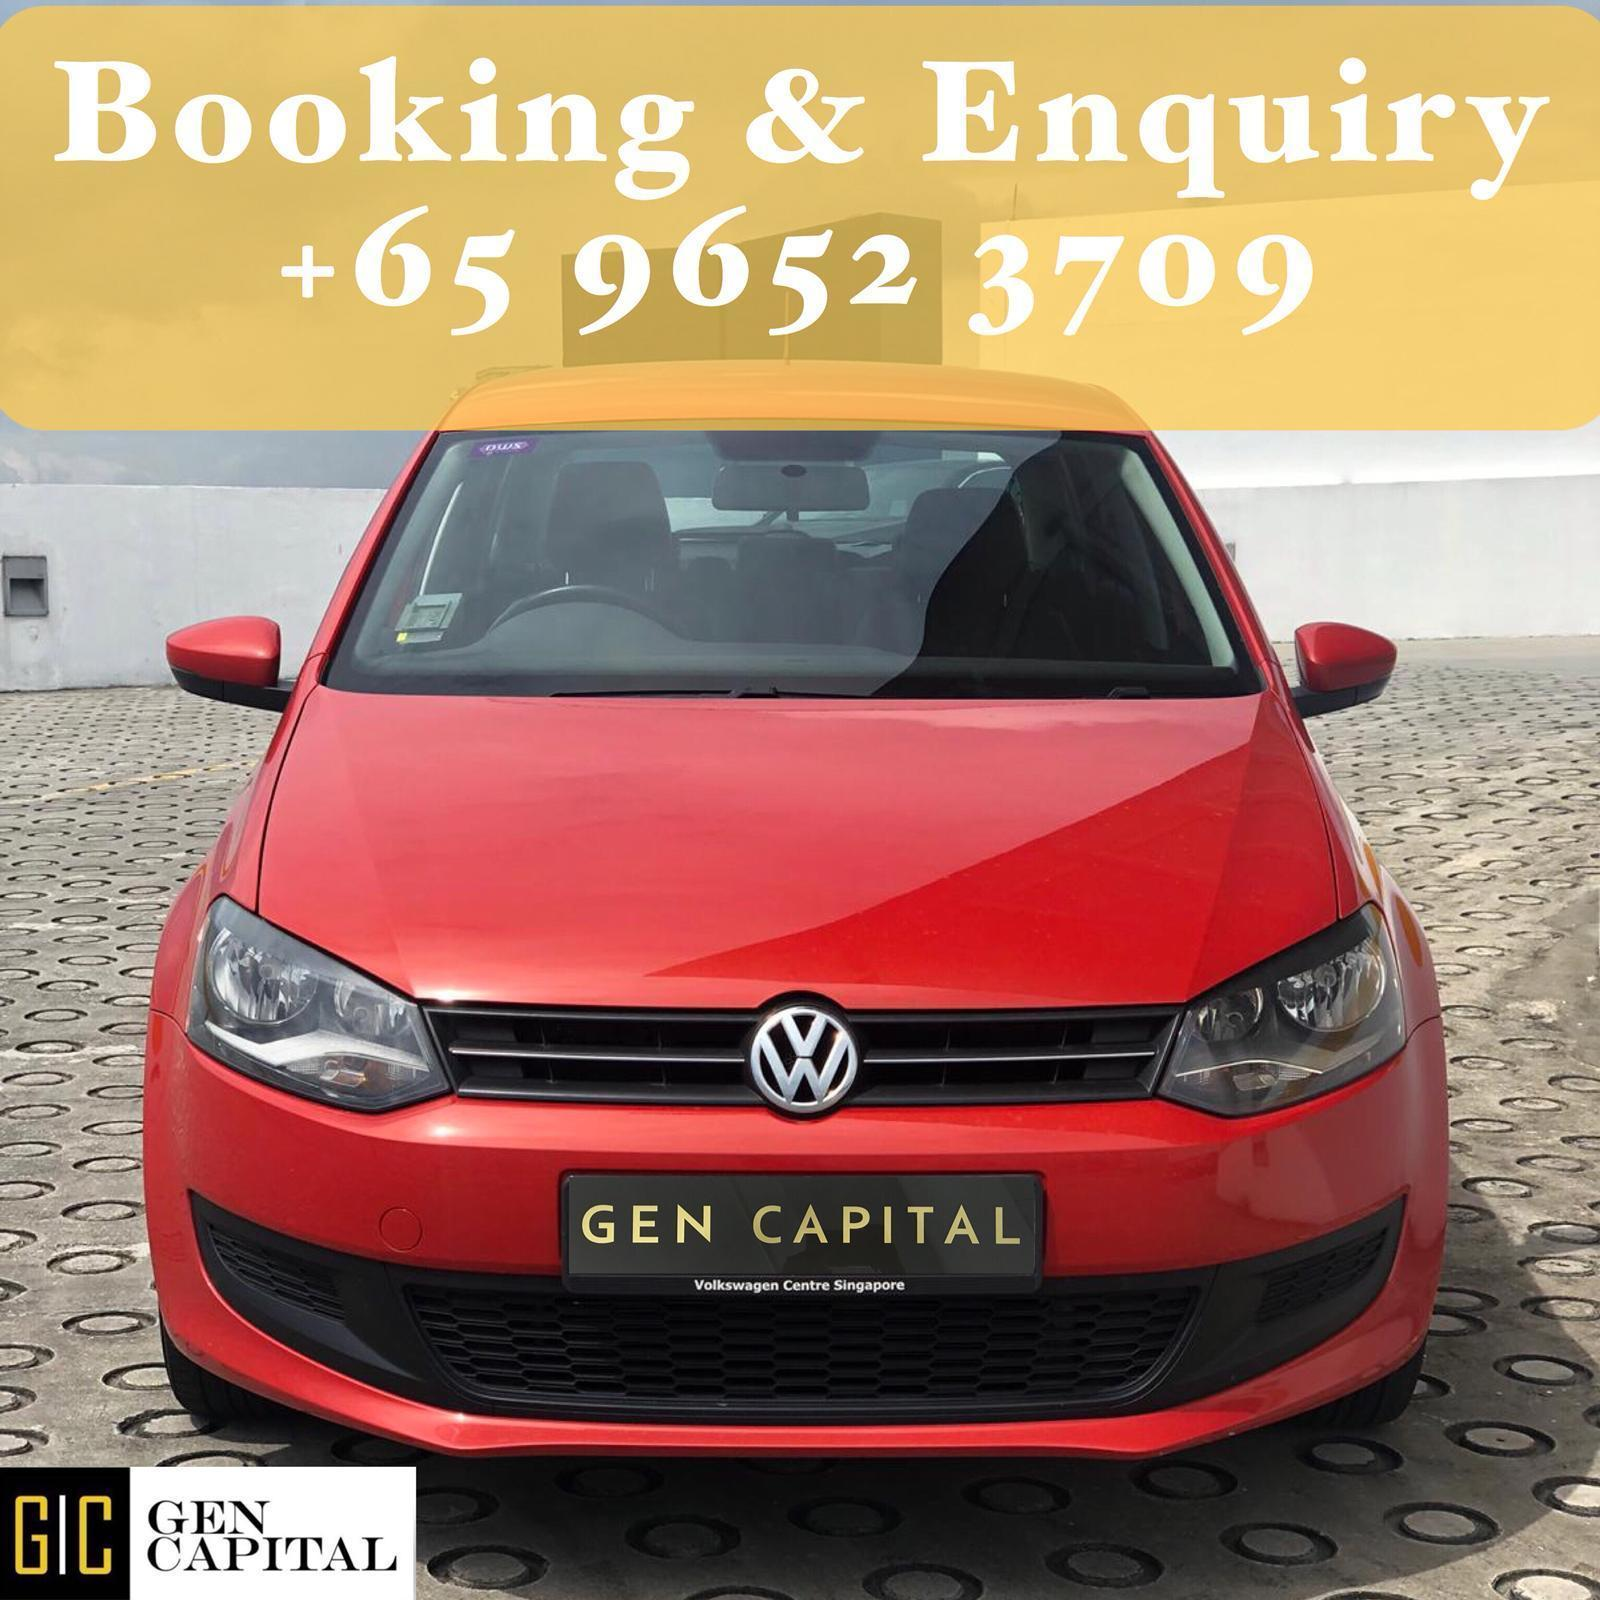 Volkswagen Polo 1.4A • Lowest rental rates, excellent condition!